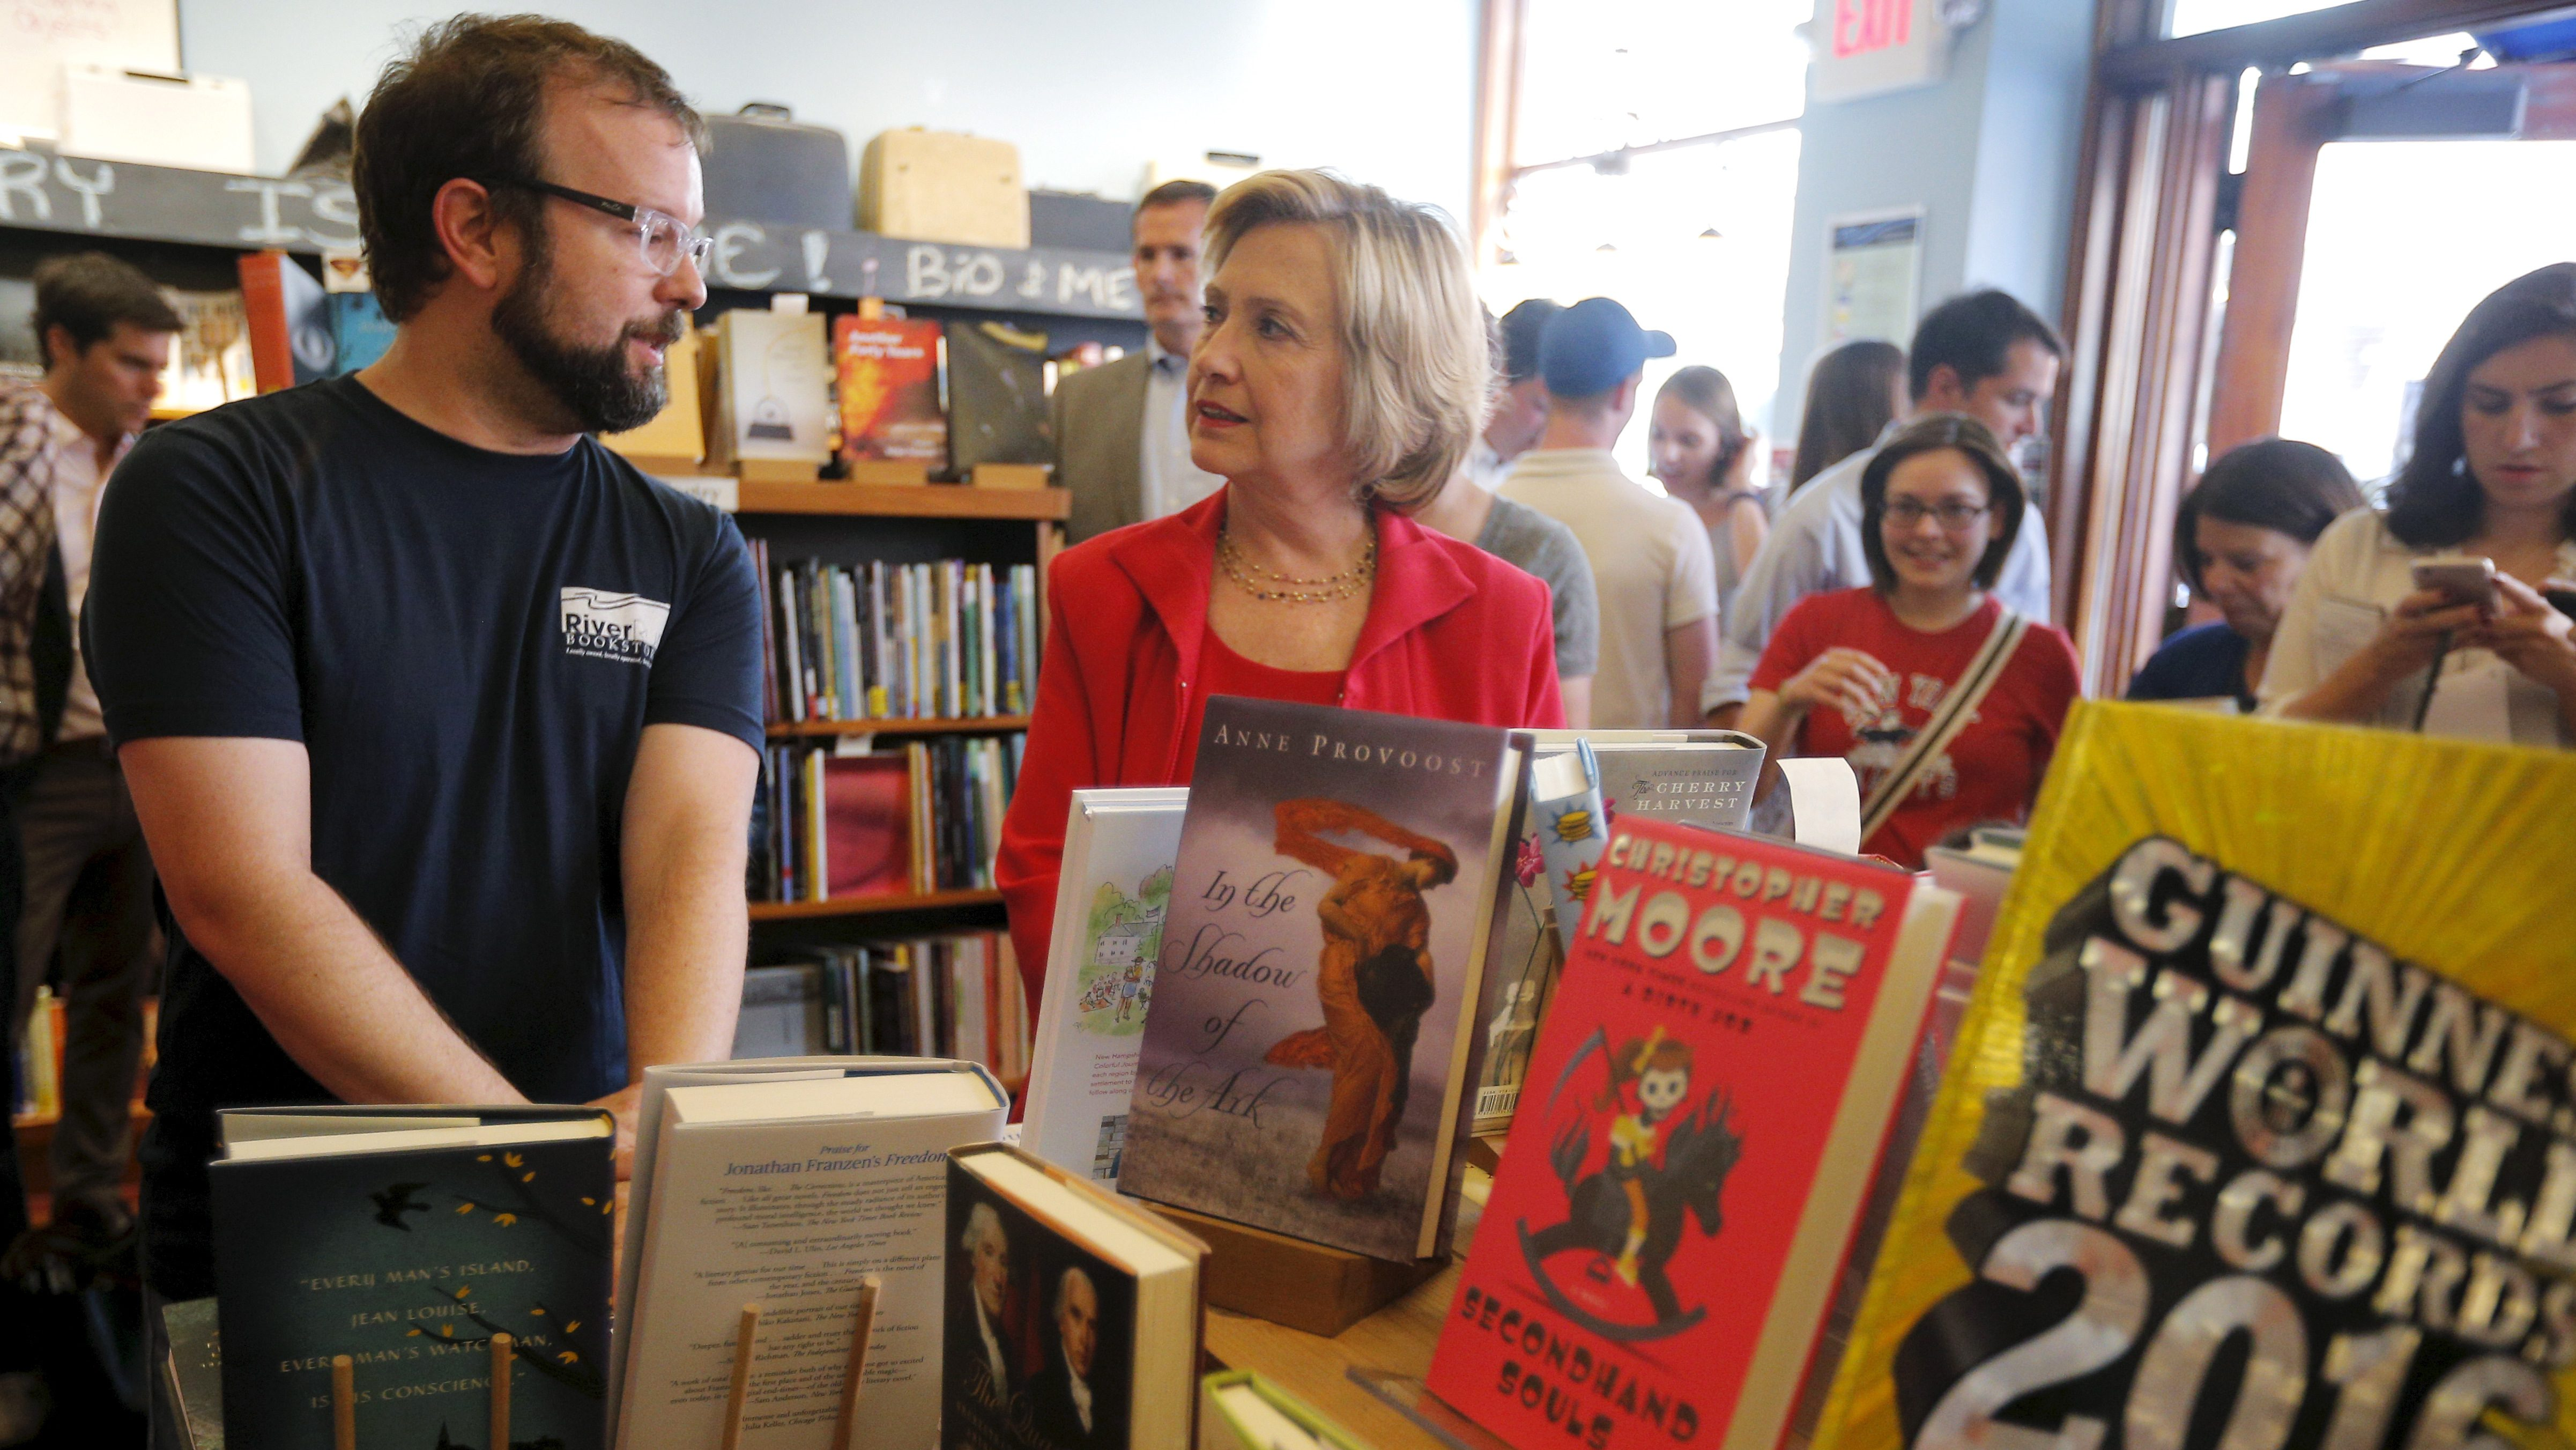 U.S. Democratic presidential candidate Hillary Clinton and Tom Holbook (L) talk about books at River Run Bookstore in Portsmouth, New Hampshire September 5, 2015.   REUTERS/Brian Snyder - RTX1R9KP